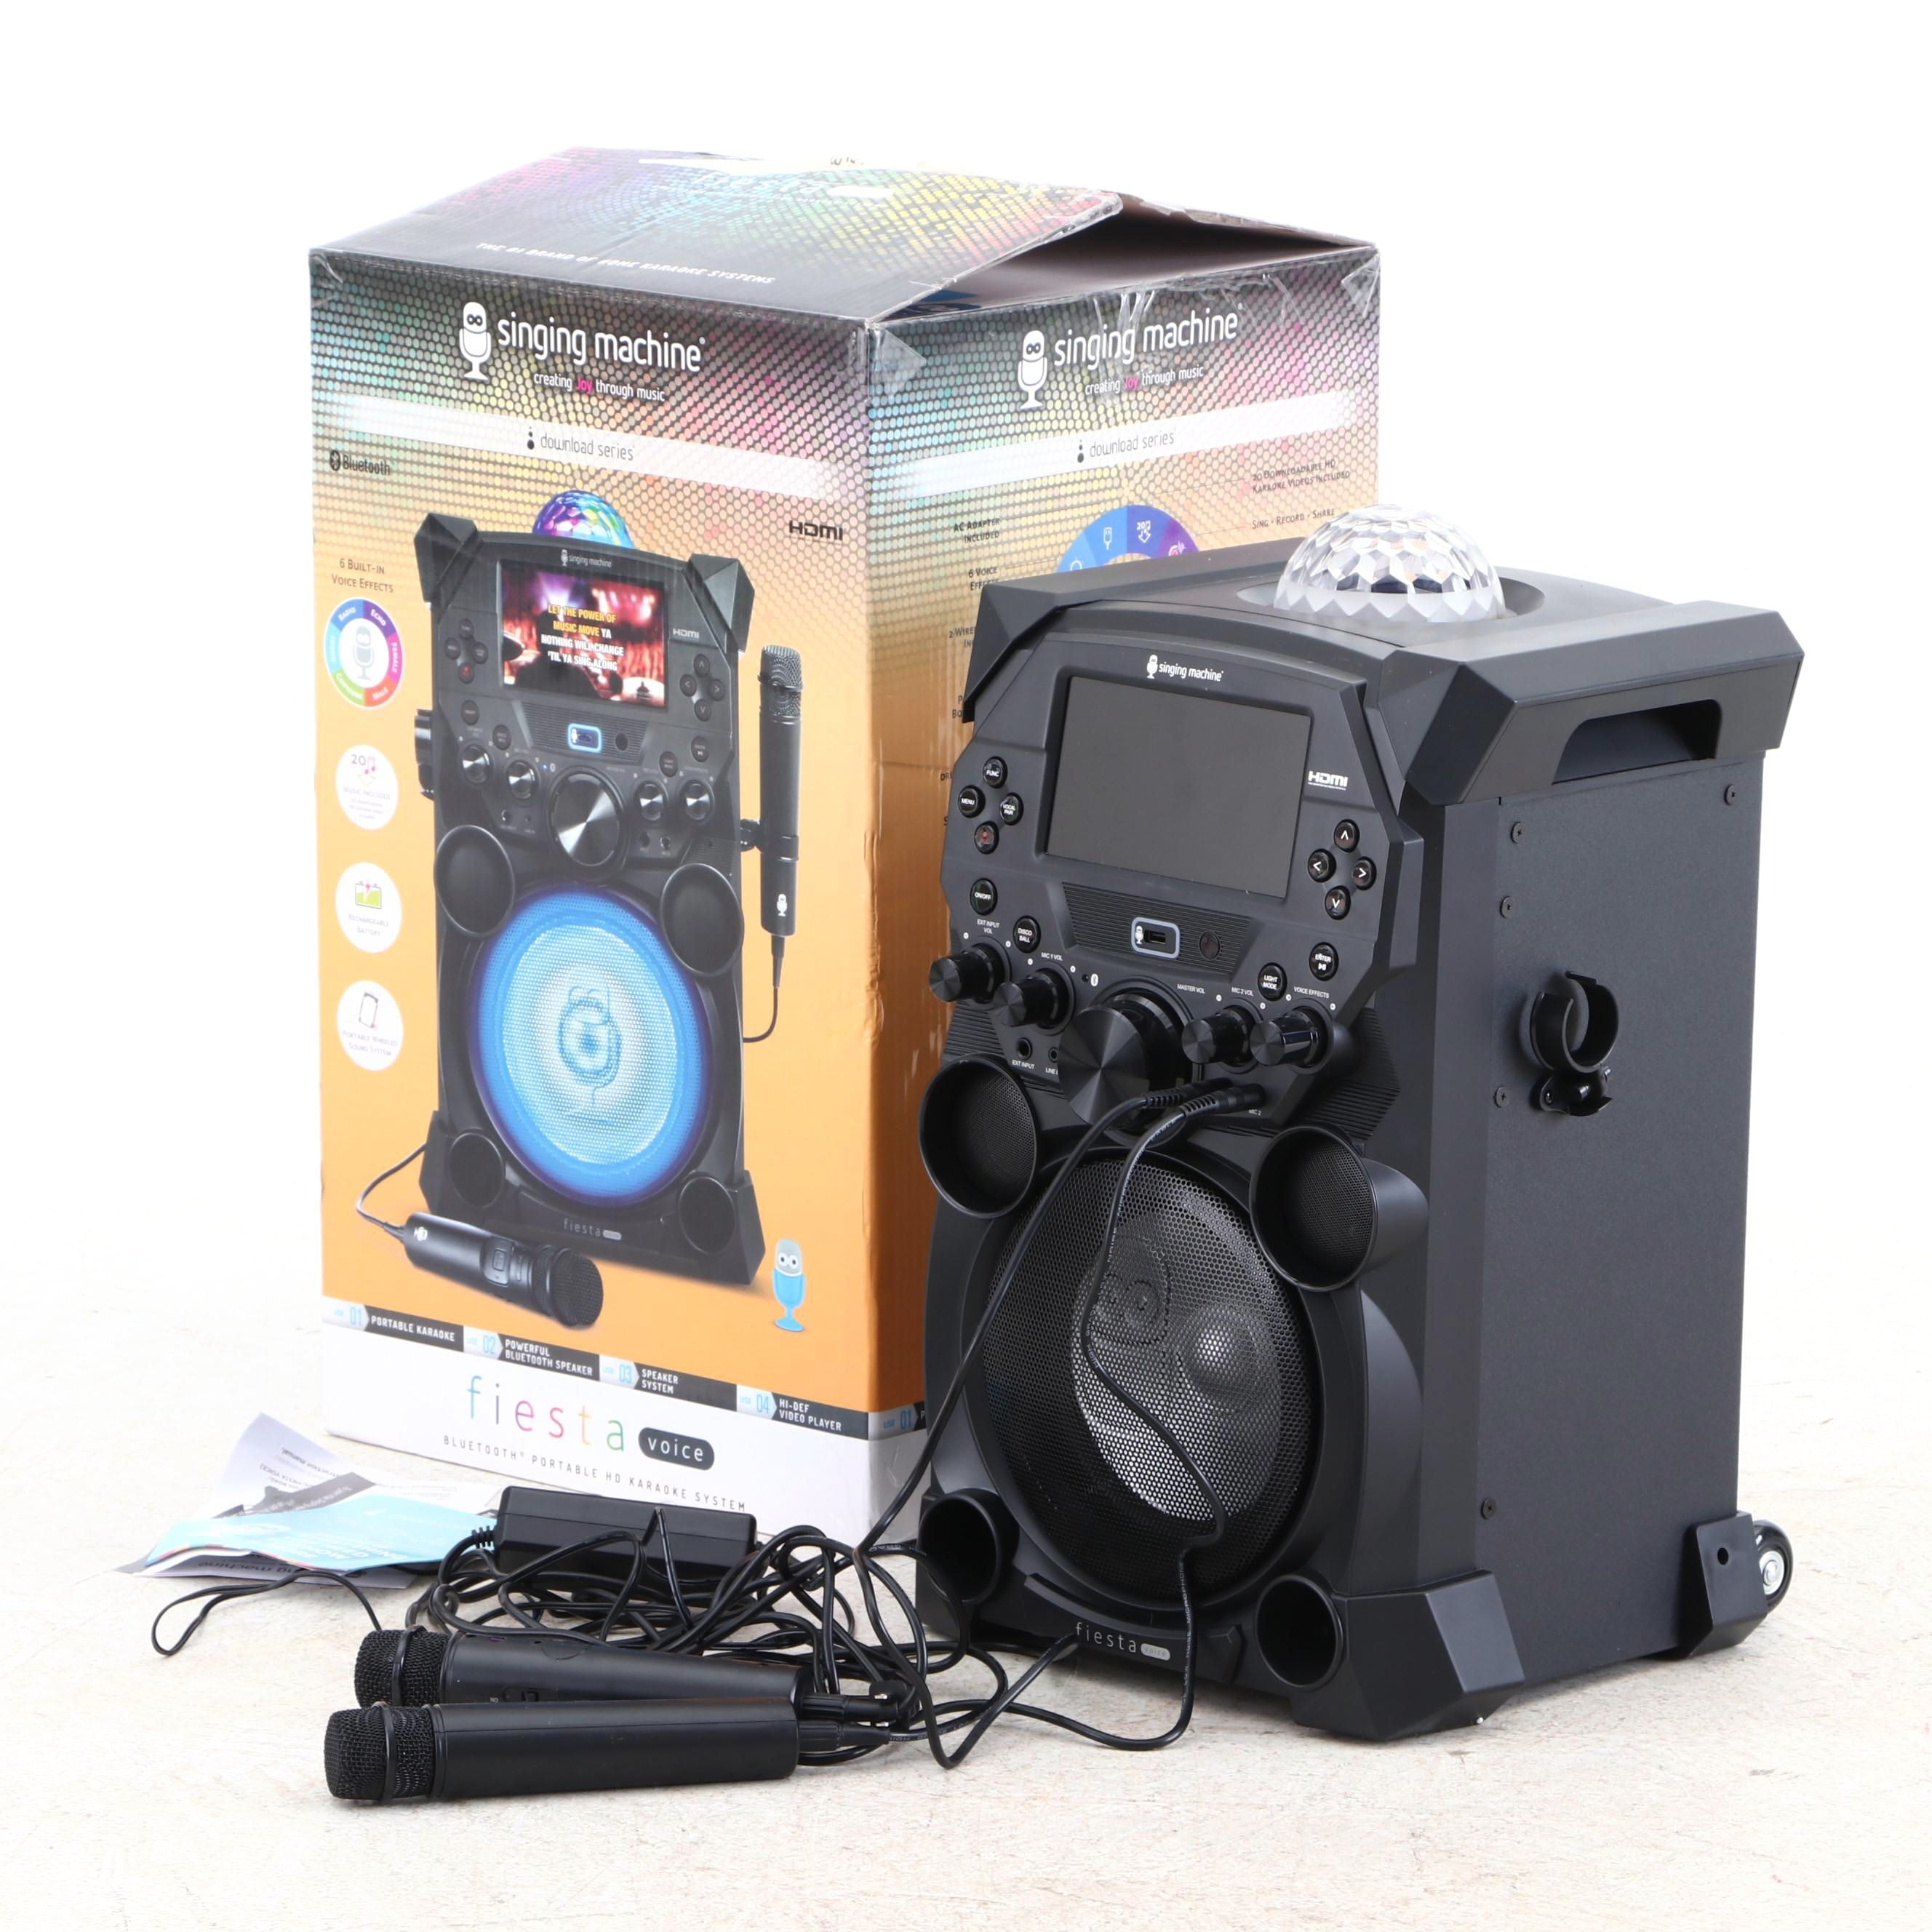 Singing Machine Fiesta Voice Download Series Karaoke Machine